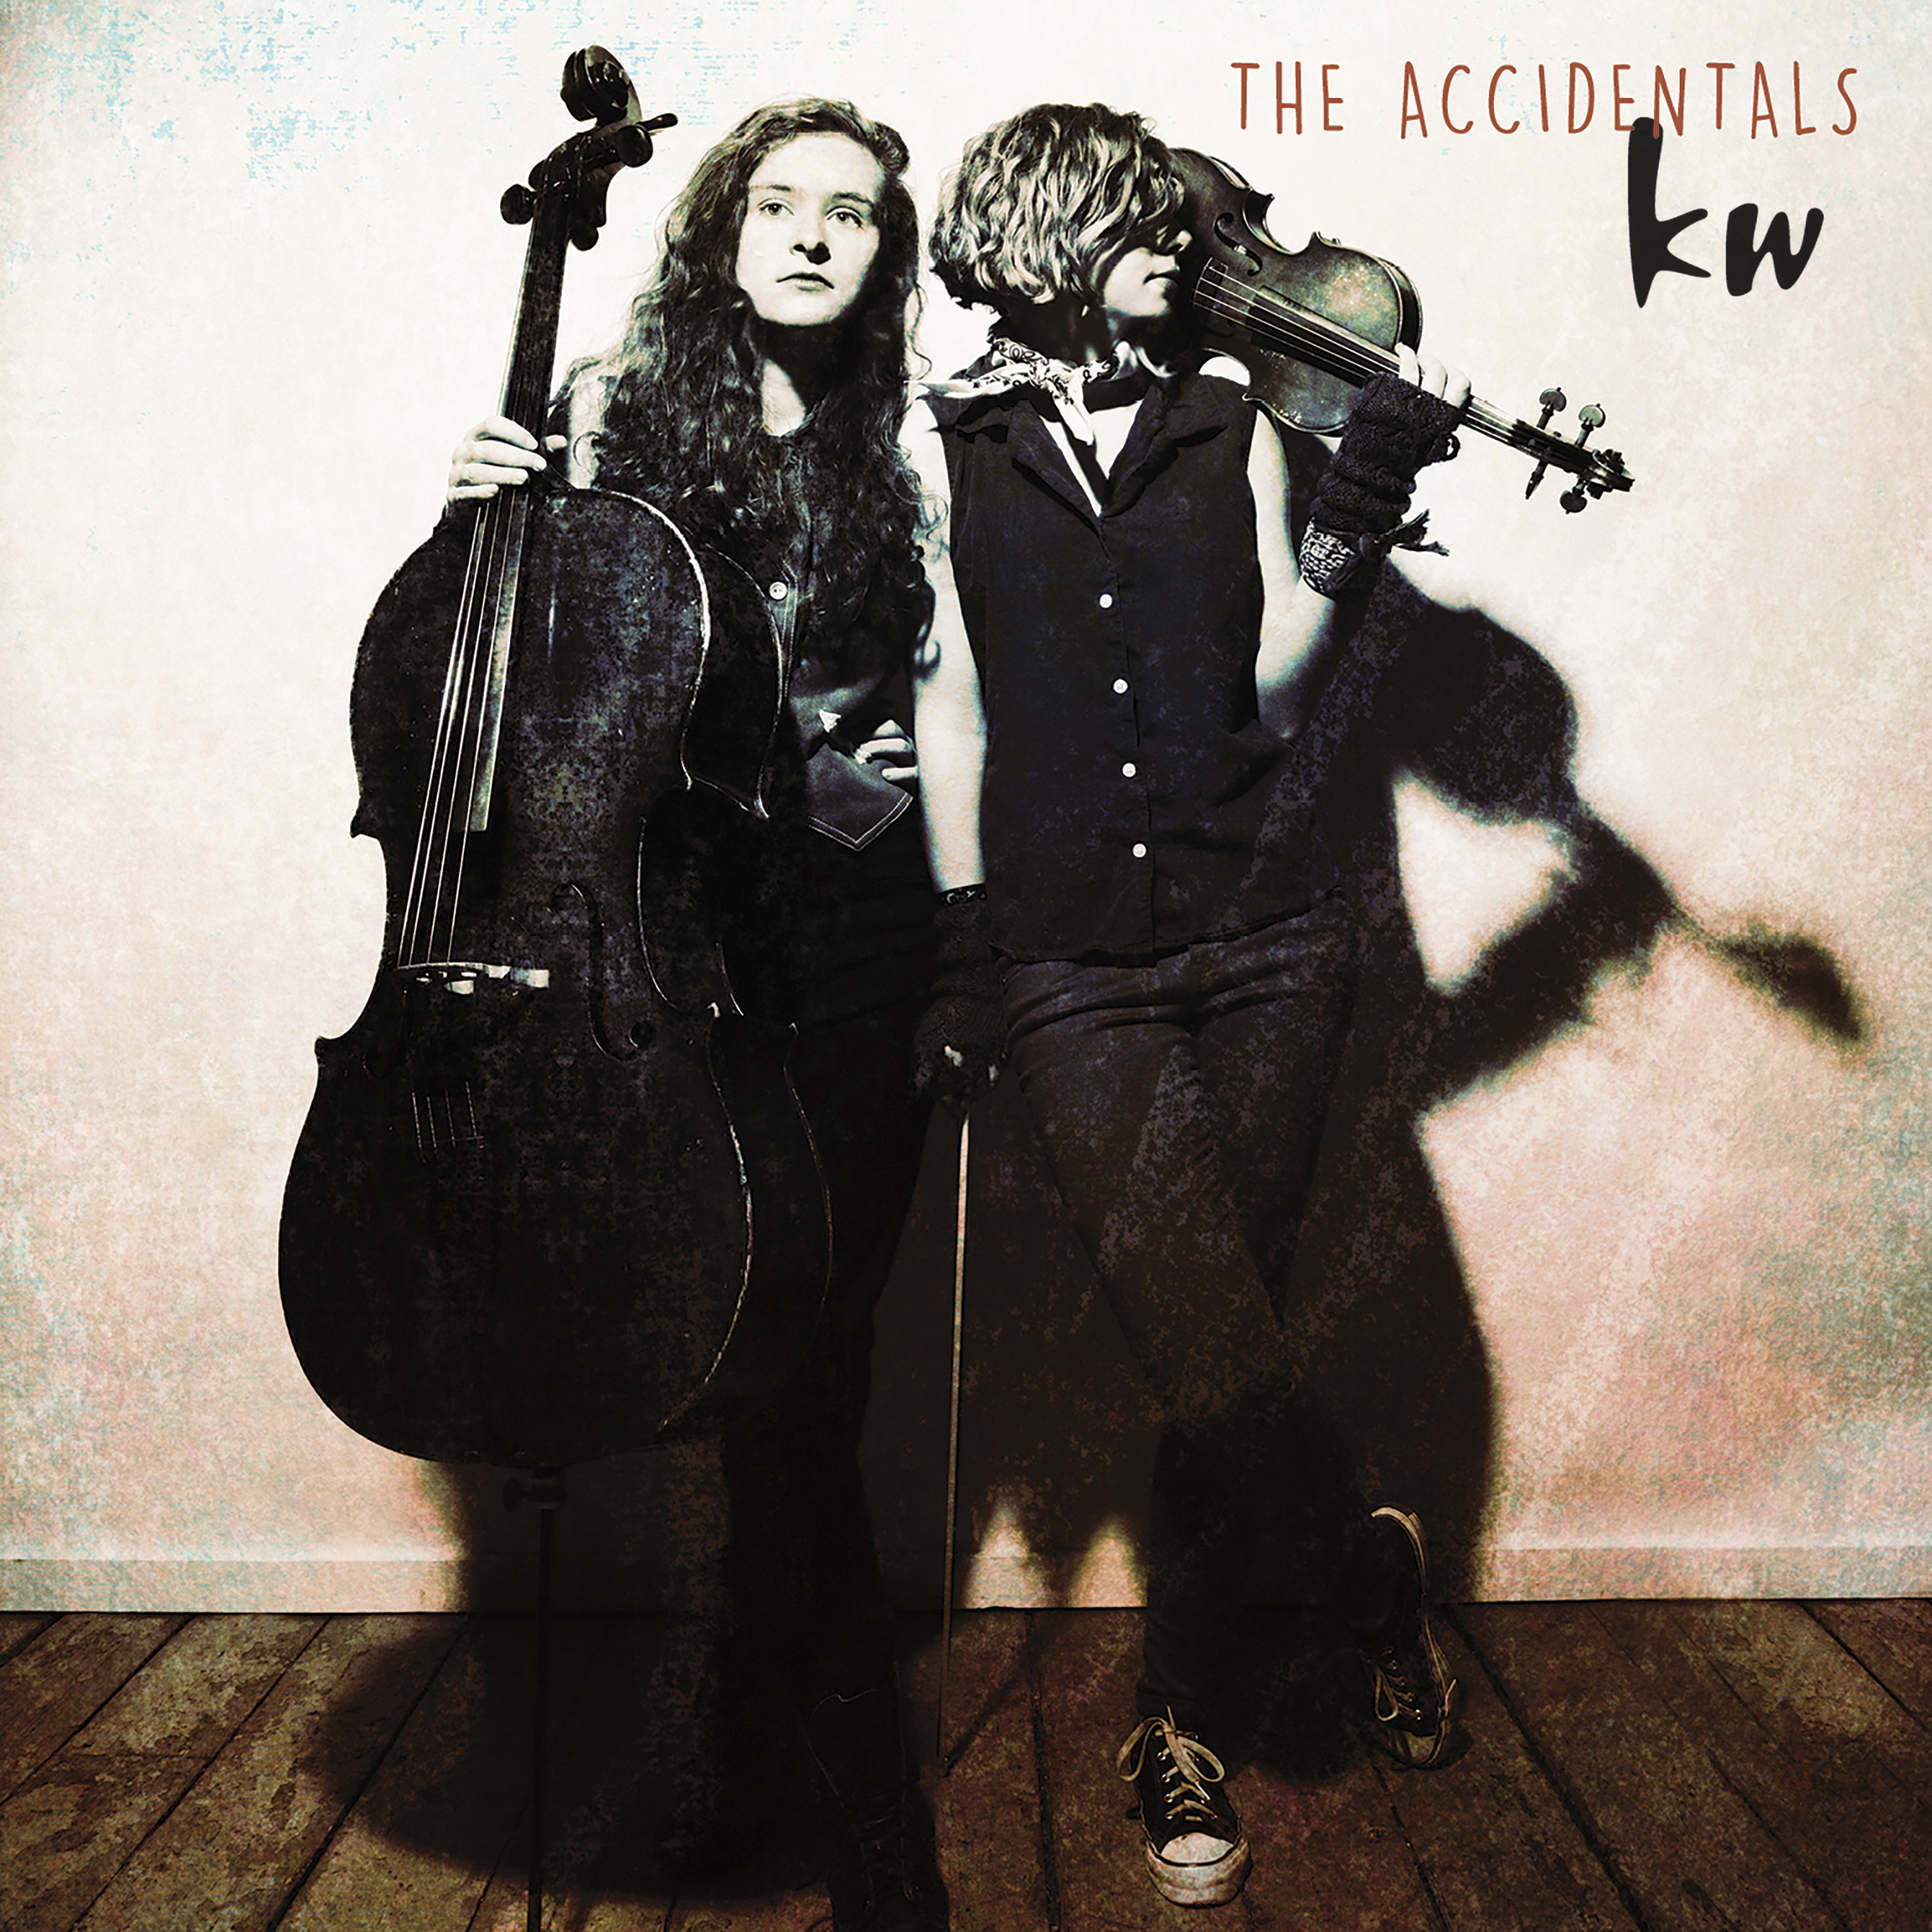 Alternative folk-rock band, The Accidentals, release the first